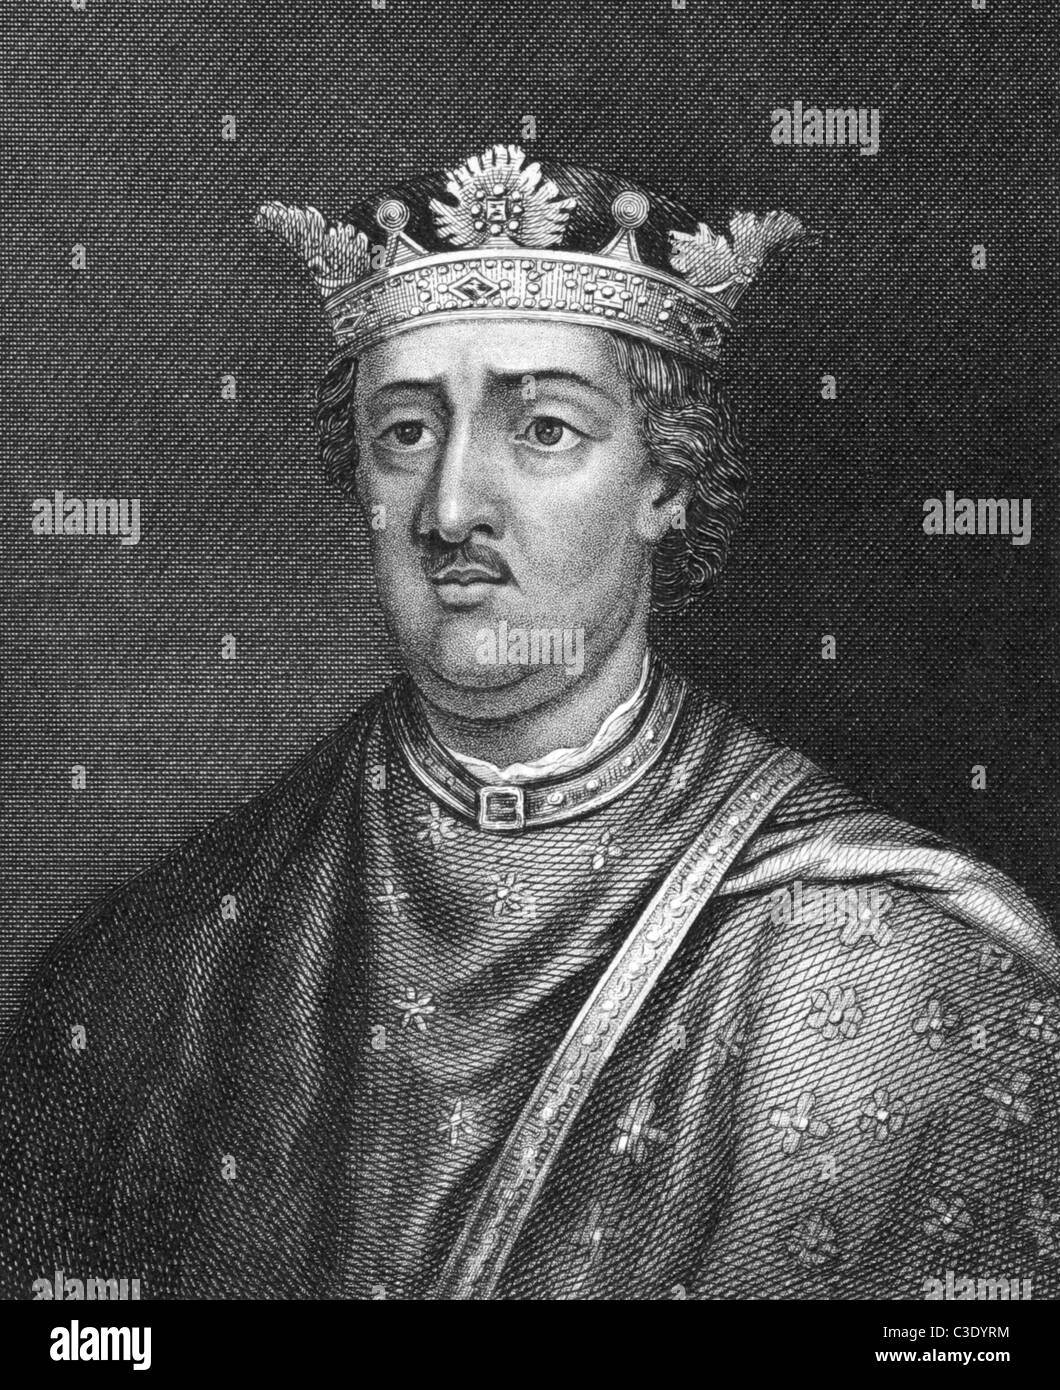 Henry II of England (1133-1189) on engraving from 1830. King of England during 1154-1189. Published in London by - Stock Image